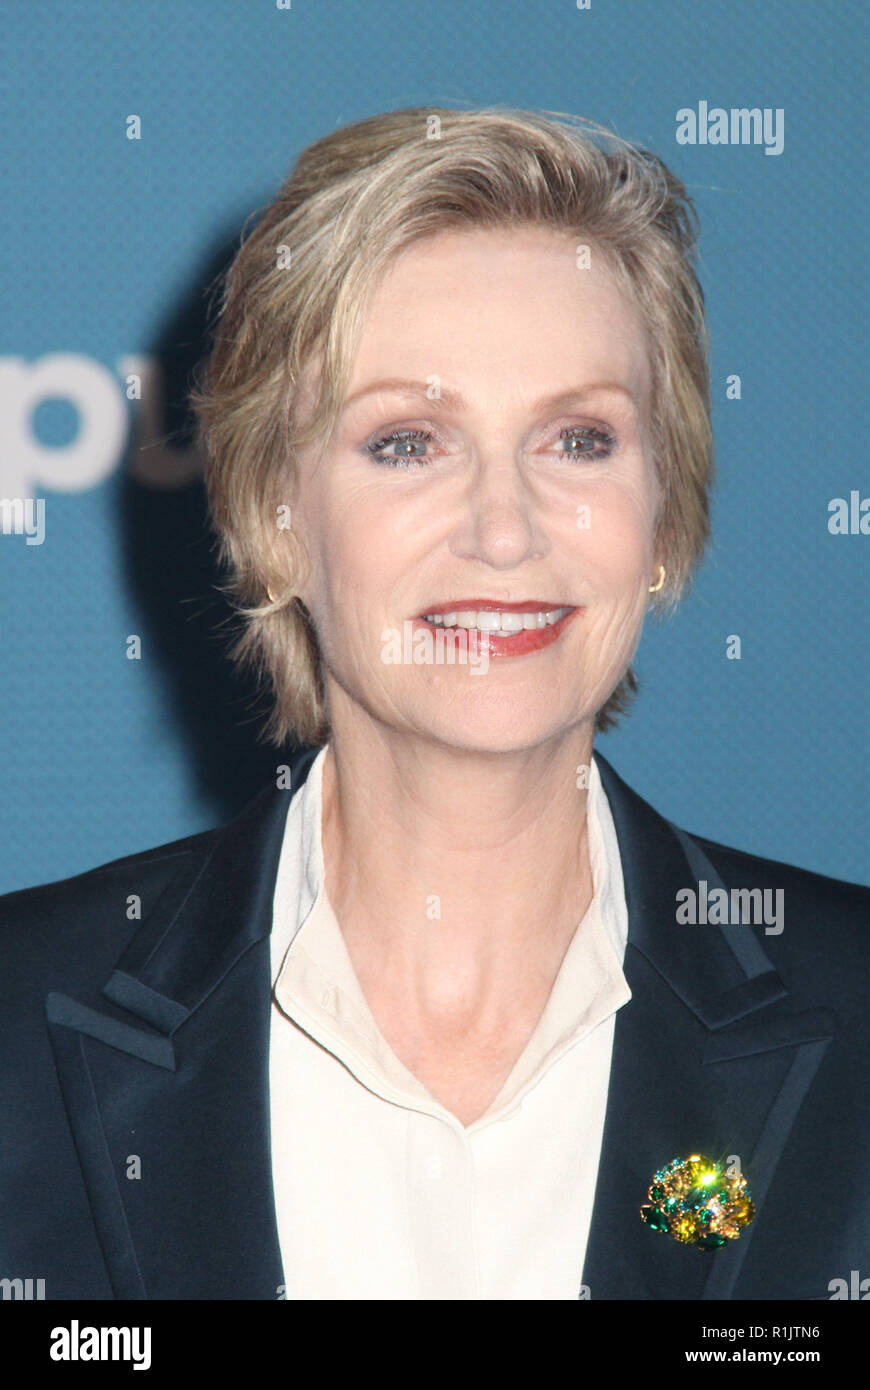 Jane Lynch  11/05/2018 The World Premiere of 'Ralph Breaks the Internet' held at El Capitan Theatre in Los Angeles, CA   Photo: Cronos/Hollywood News - Stock Image